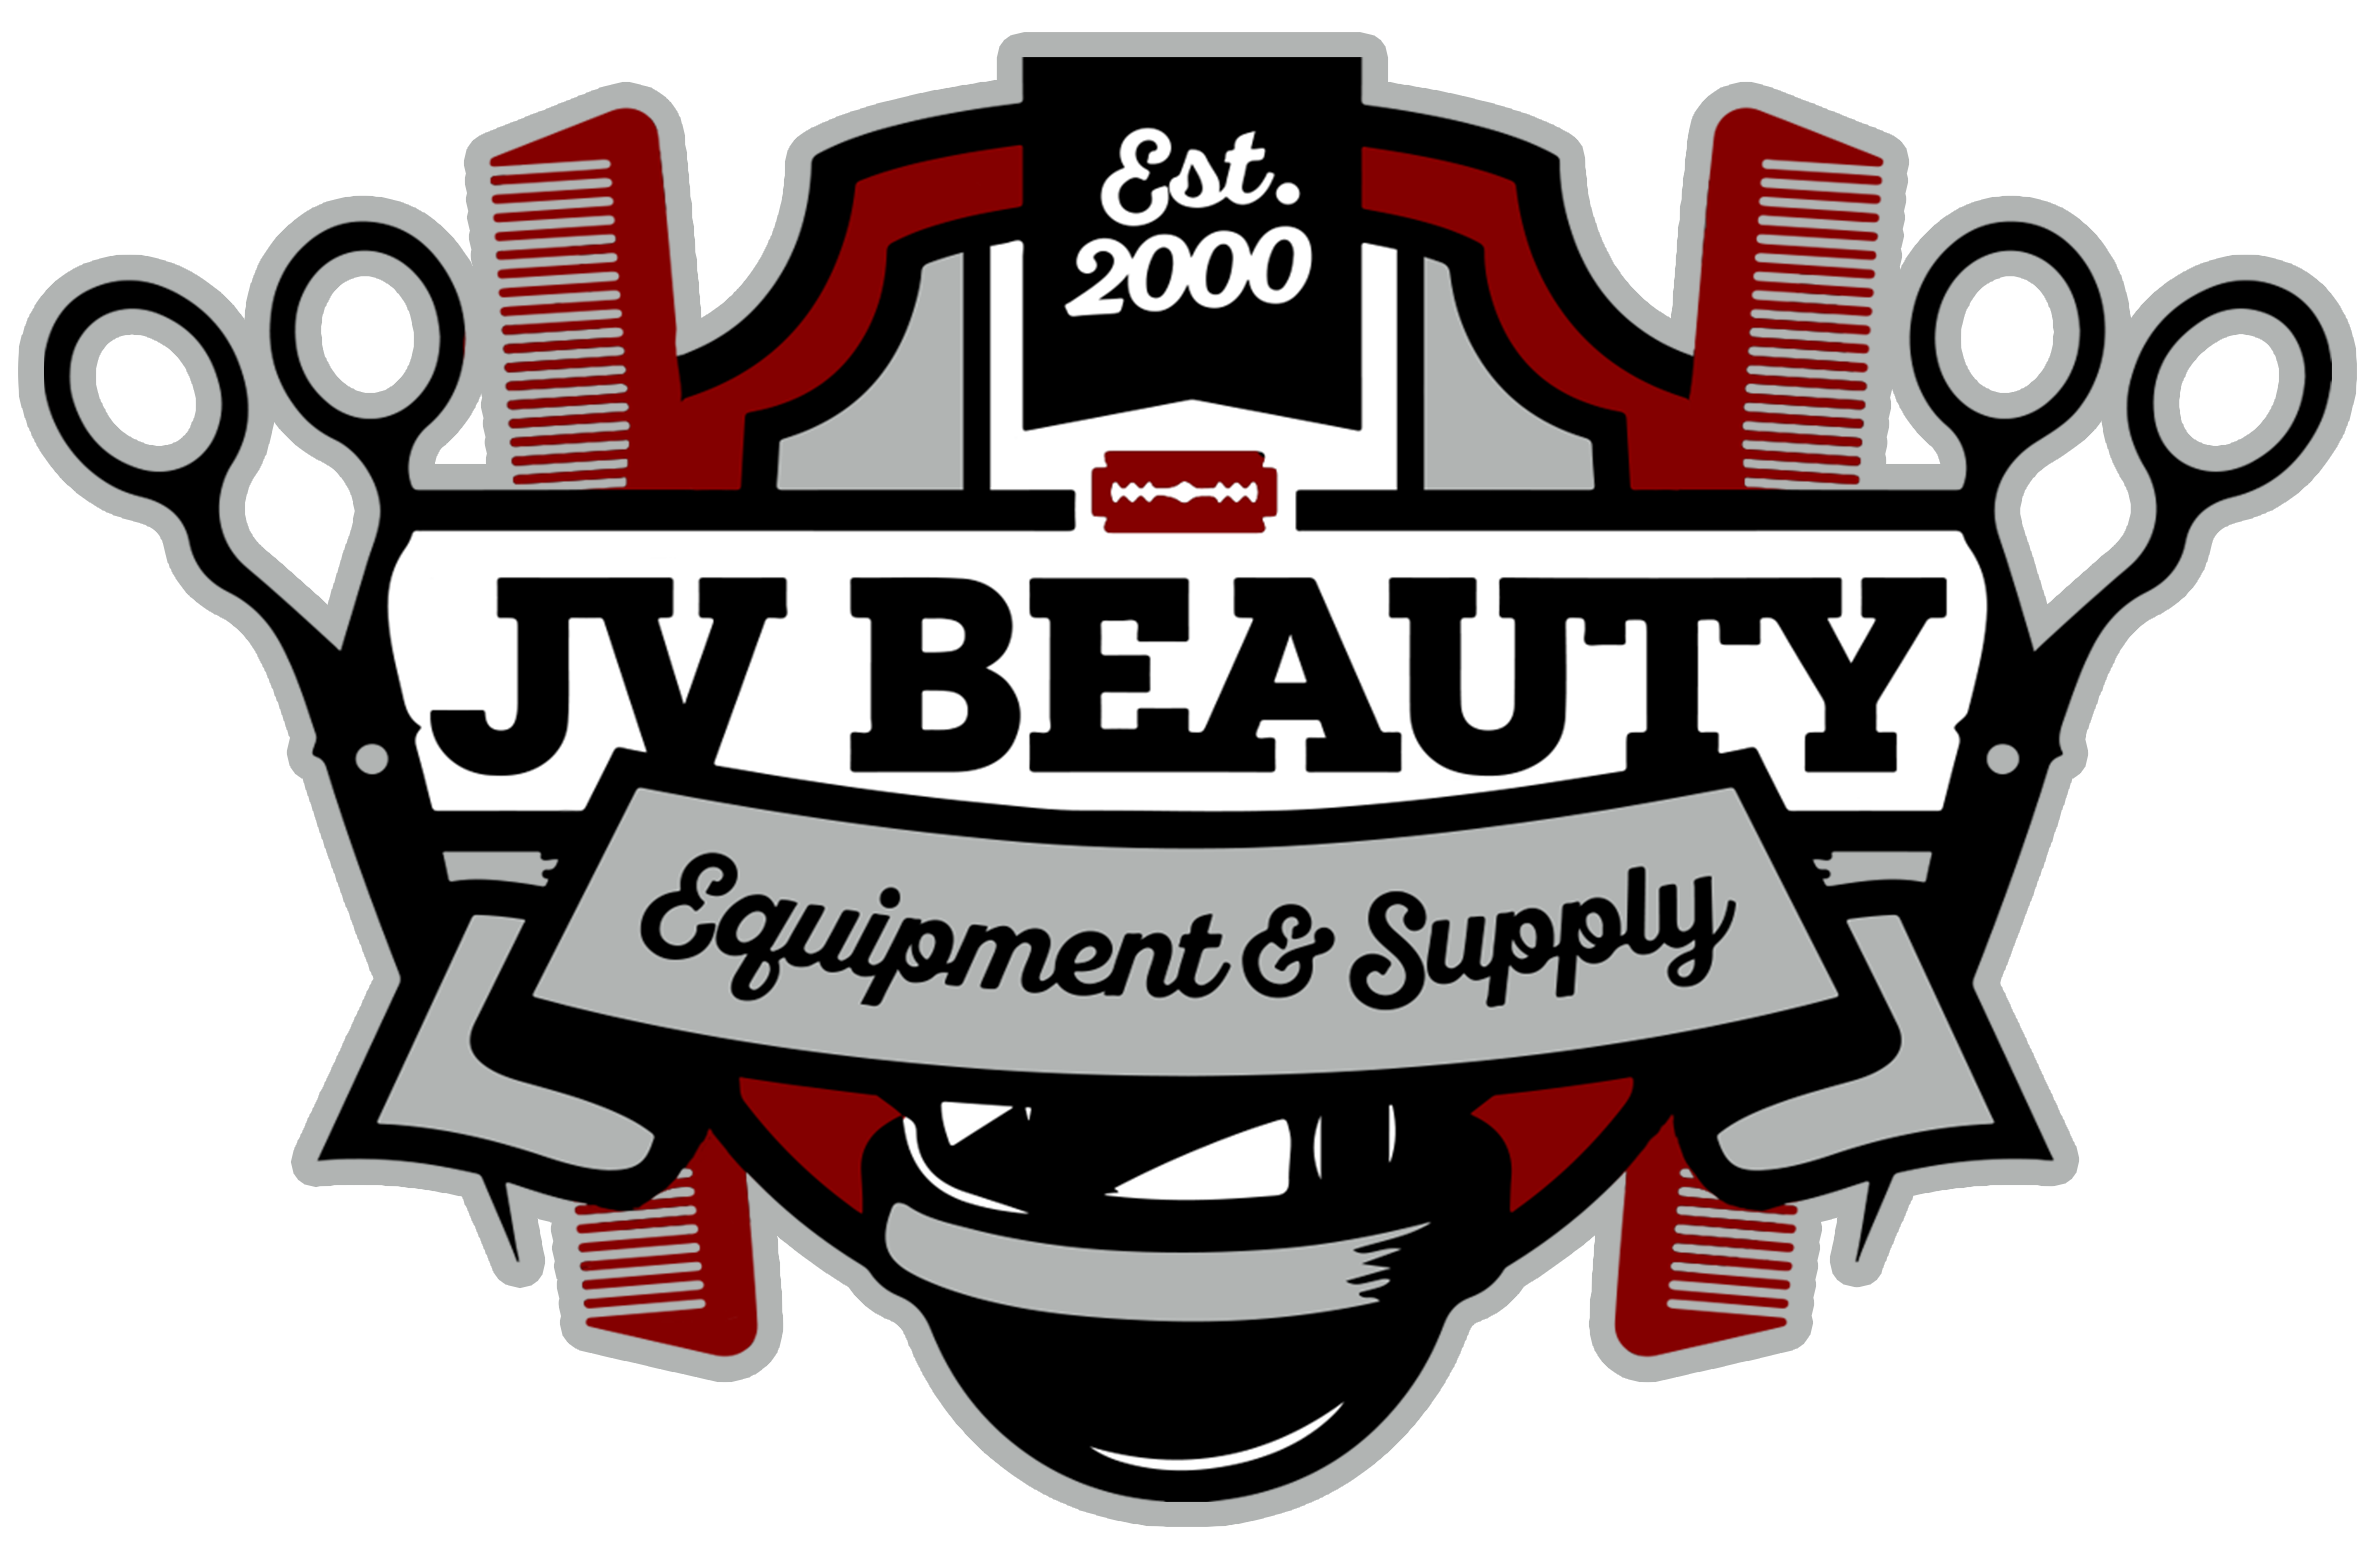 JV Beauty Equipment